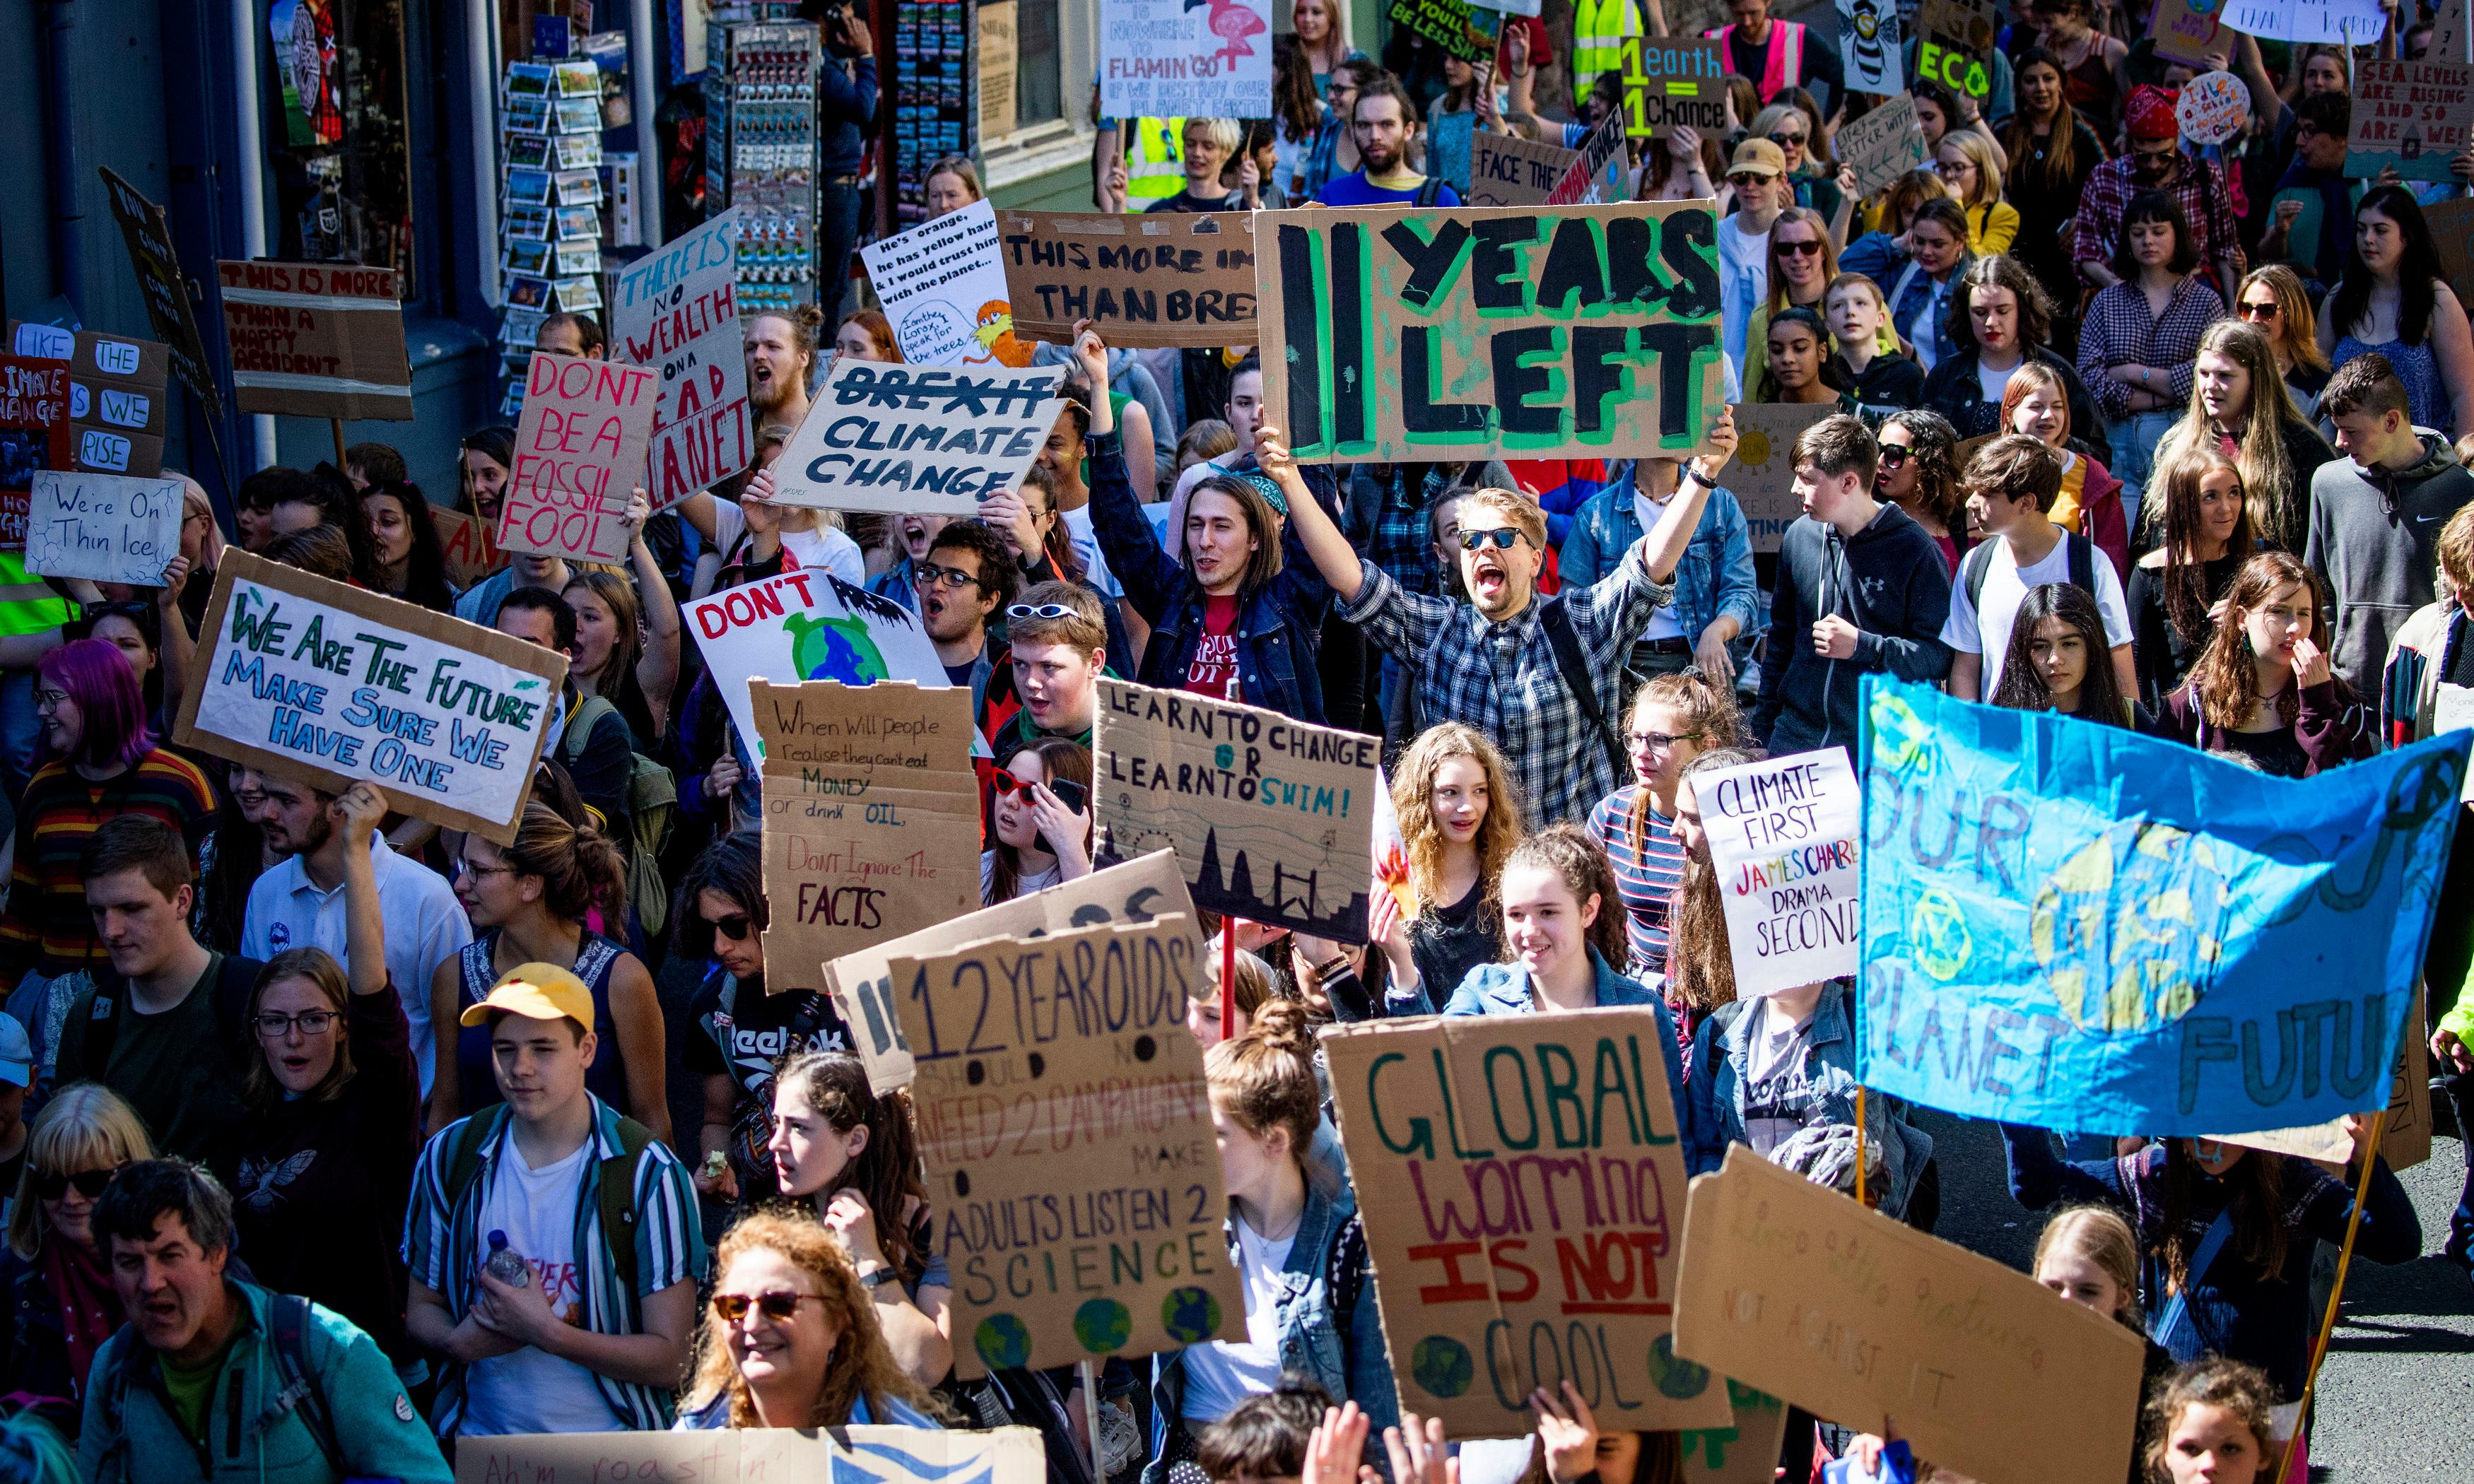 Rebecca Solnit: 'Every protest shifts the world's balance'